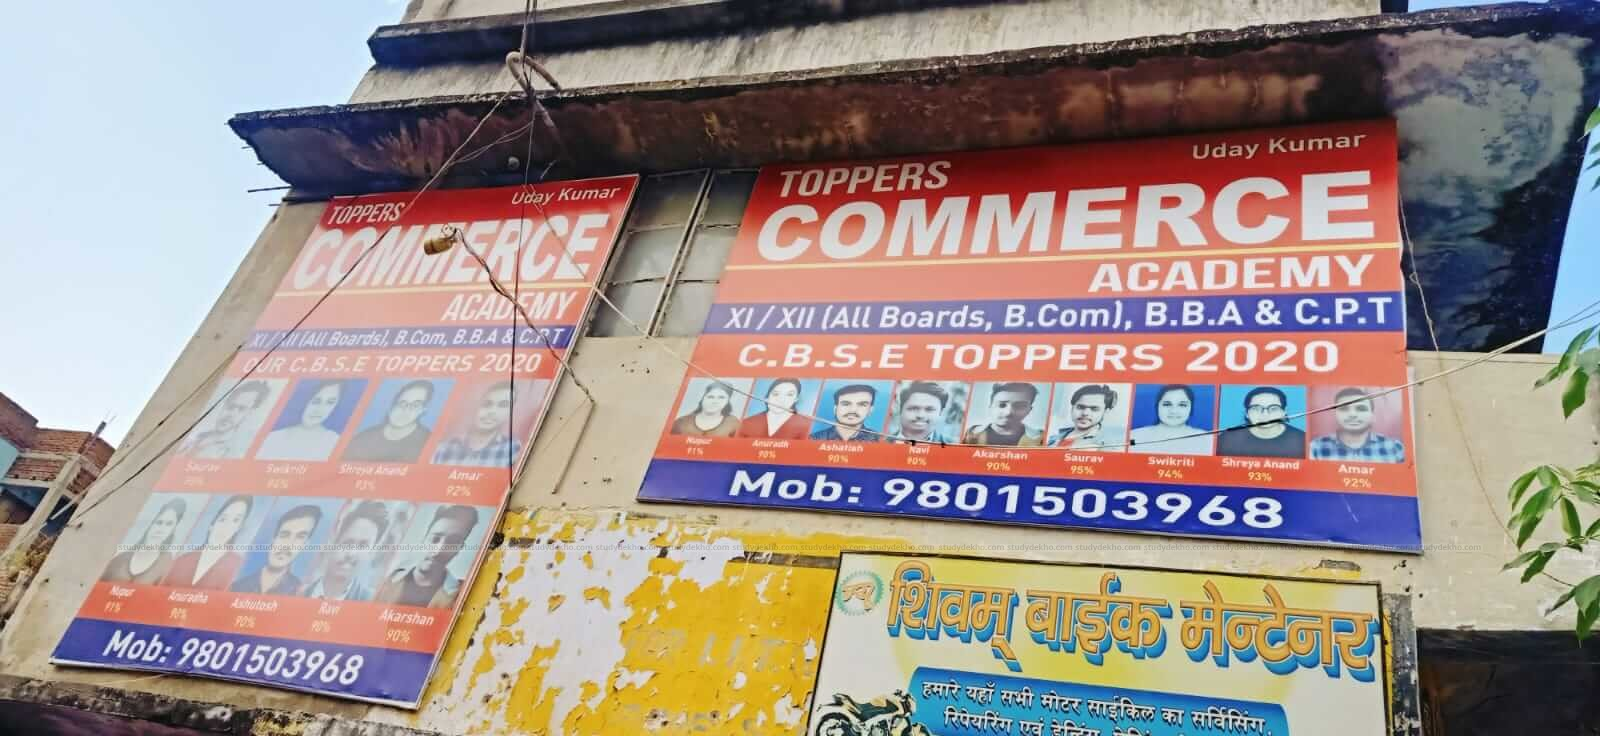 Toppers Commerce Academy Logo